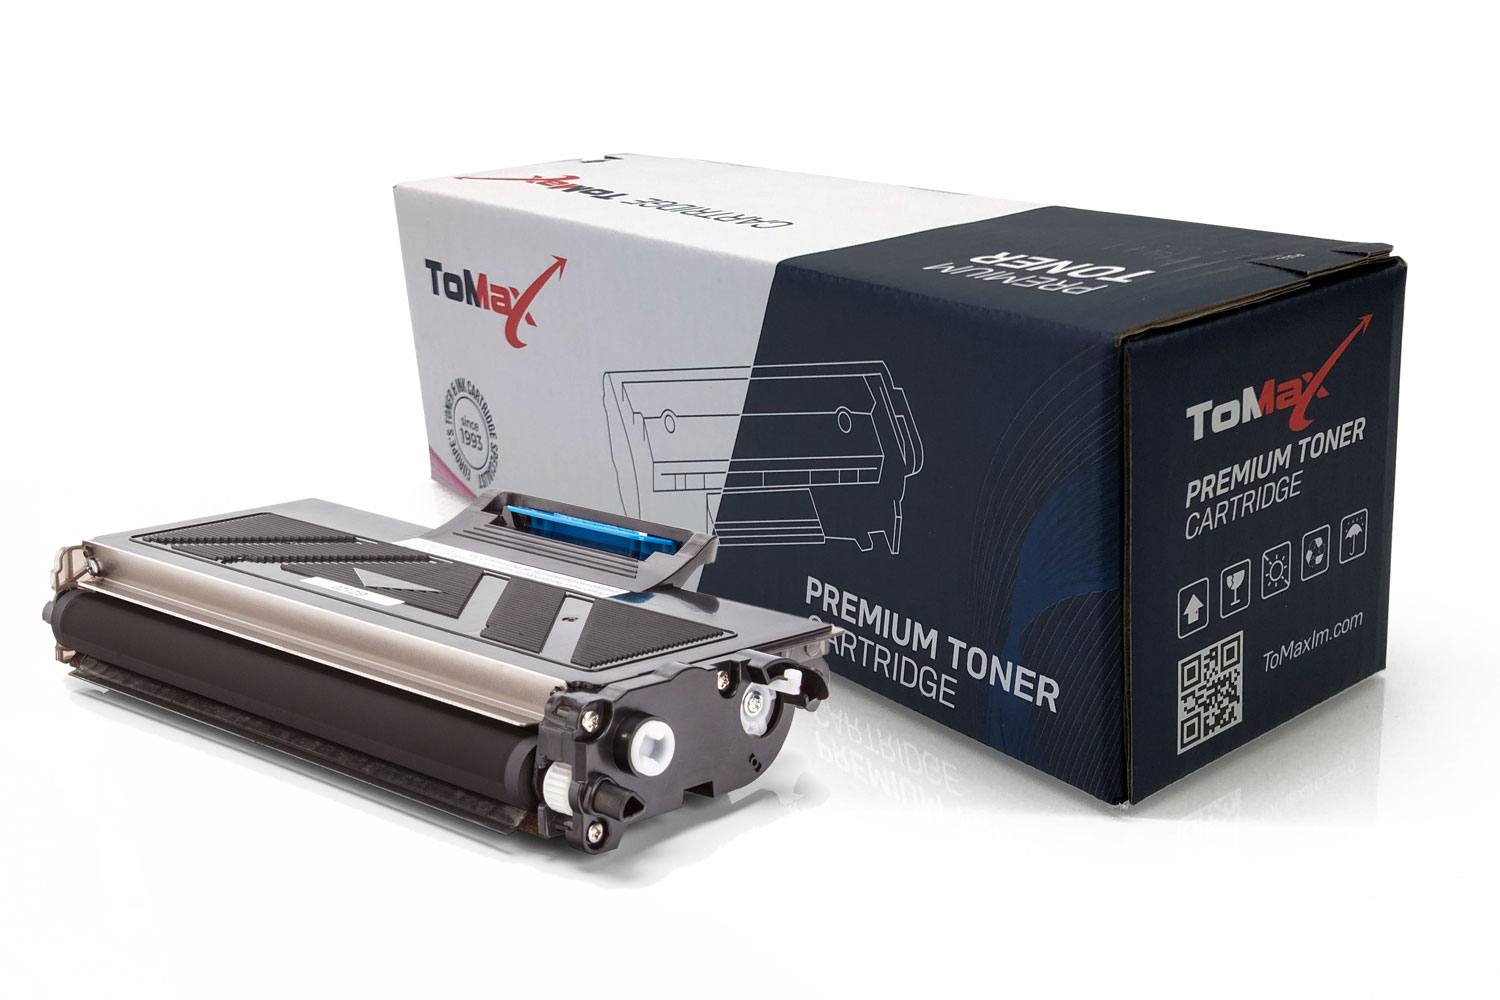 ToMax Premium Toner Cartridge replaces HP CE313A / 126A Magenta